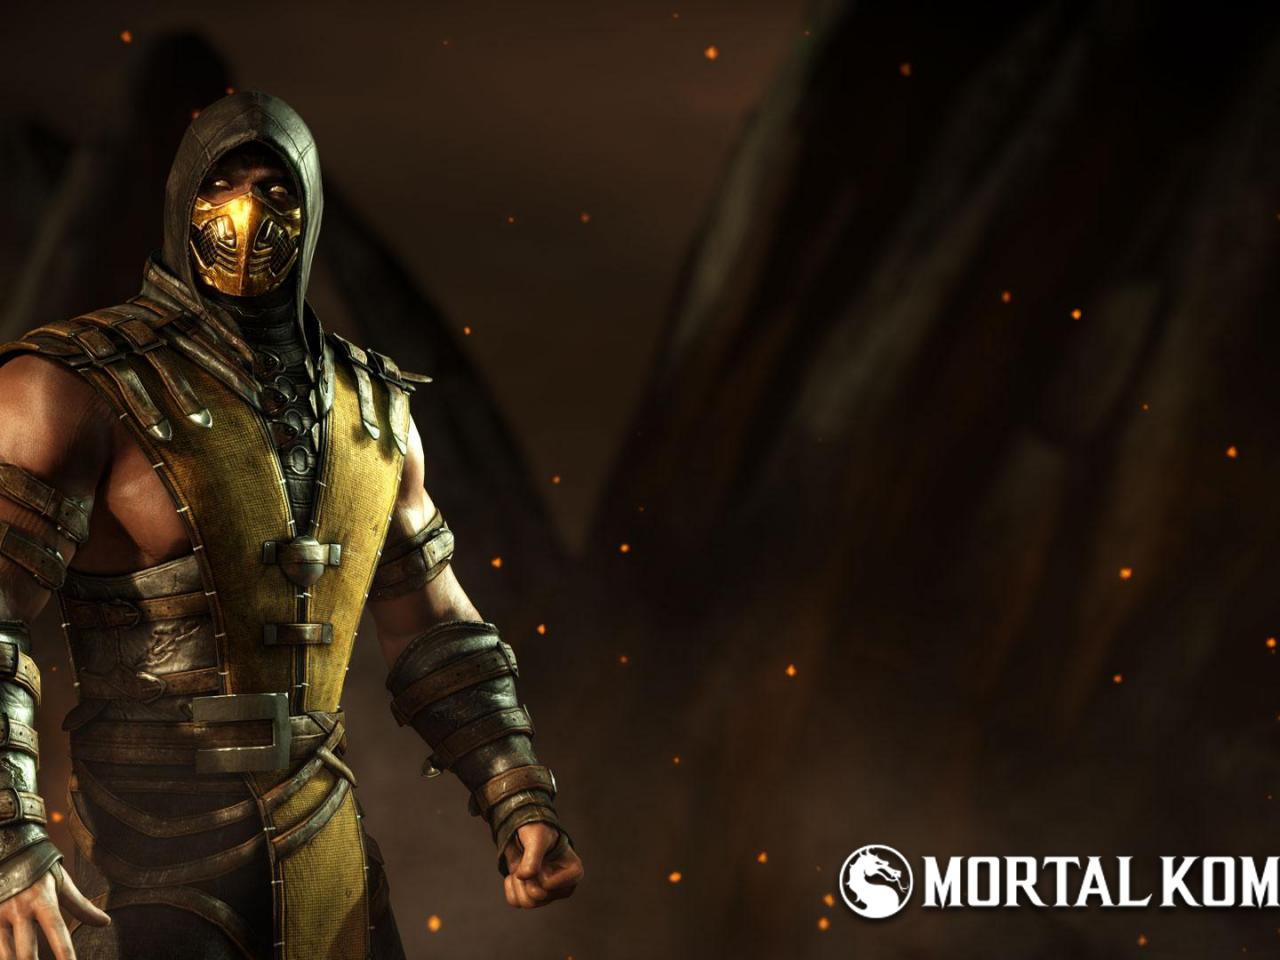 Images Of Scorpion From Mortal Kombat For Wallpaper: Pictures Of Scorpion From Mortal Kombat As Playstation 4